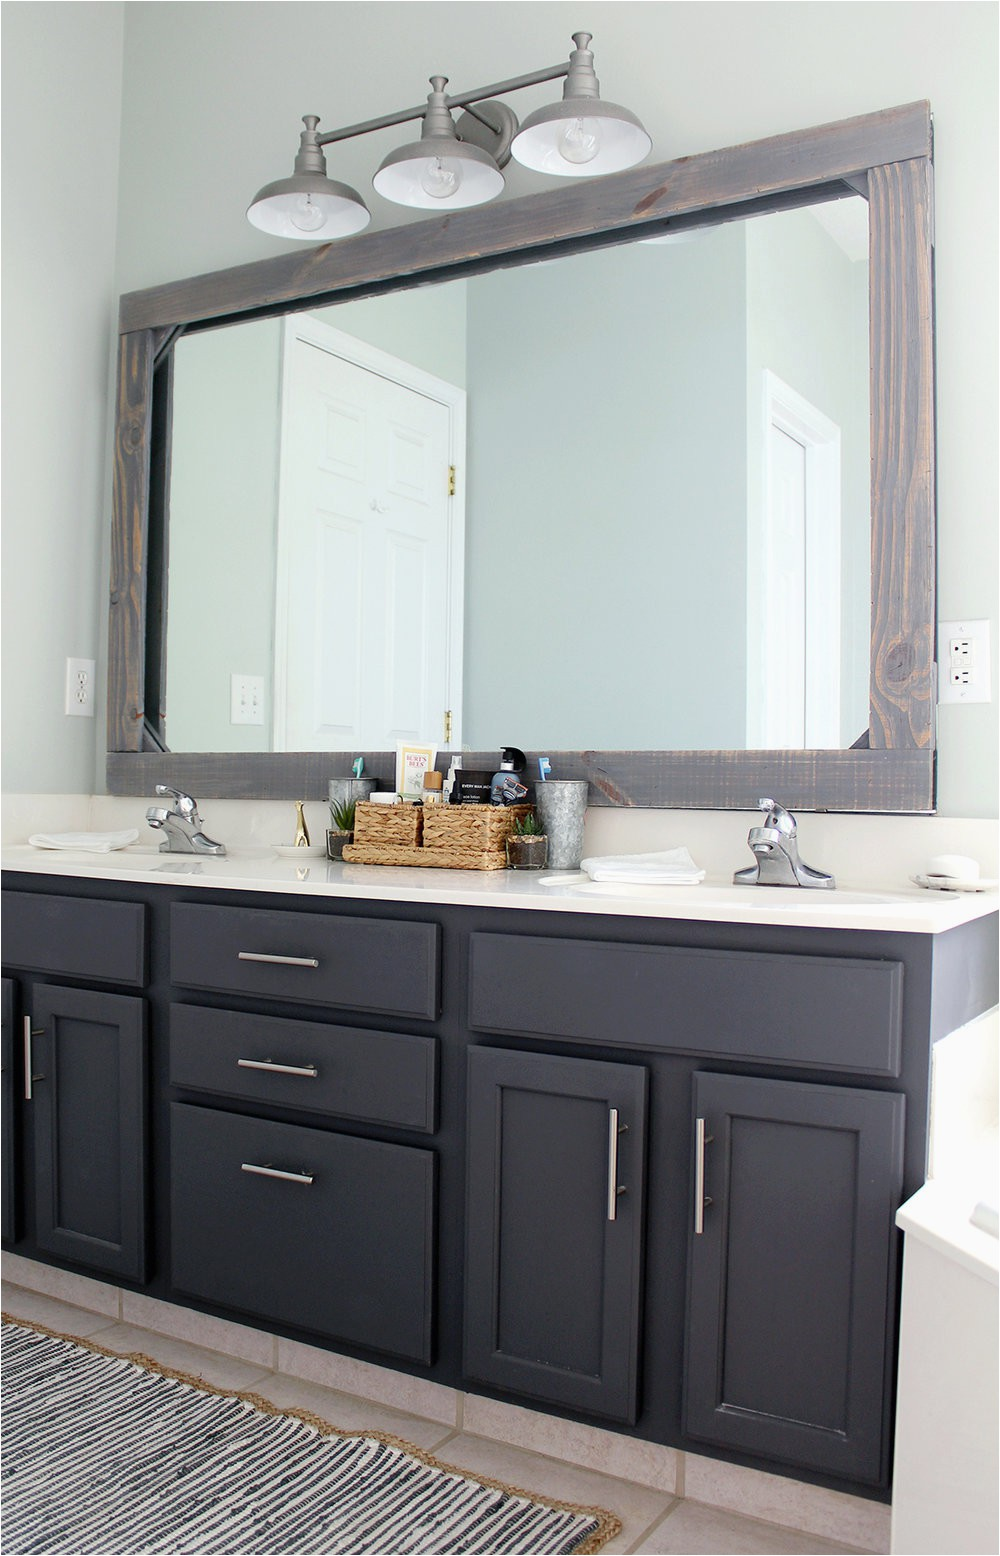 A Master Bathroom Refresh With Tuesday Morning masterbathroom bud decor Ad TuesdayMorningFinds